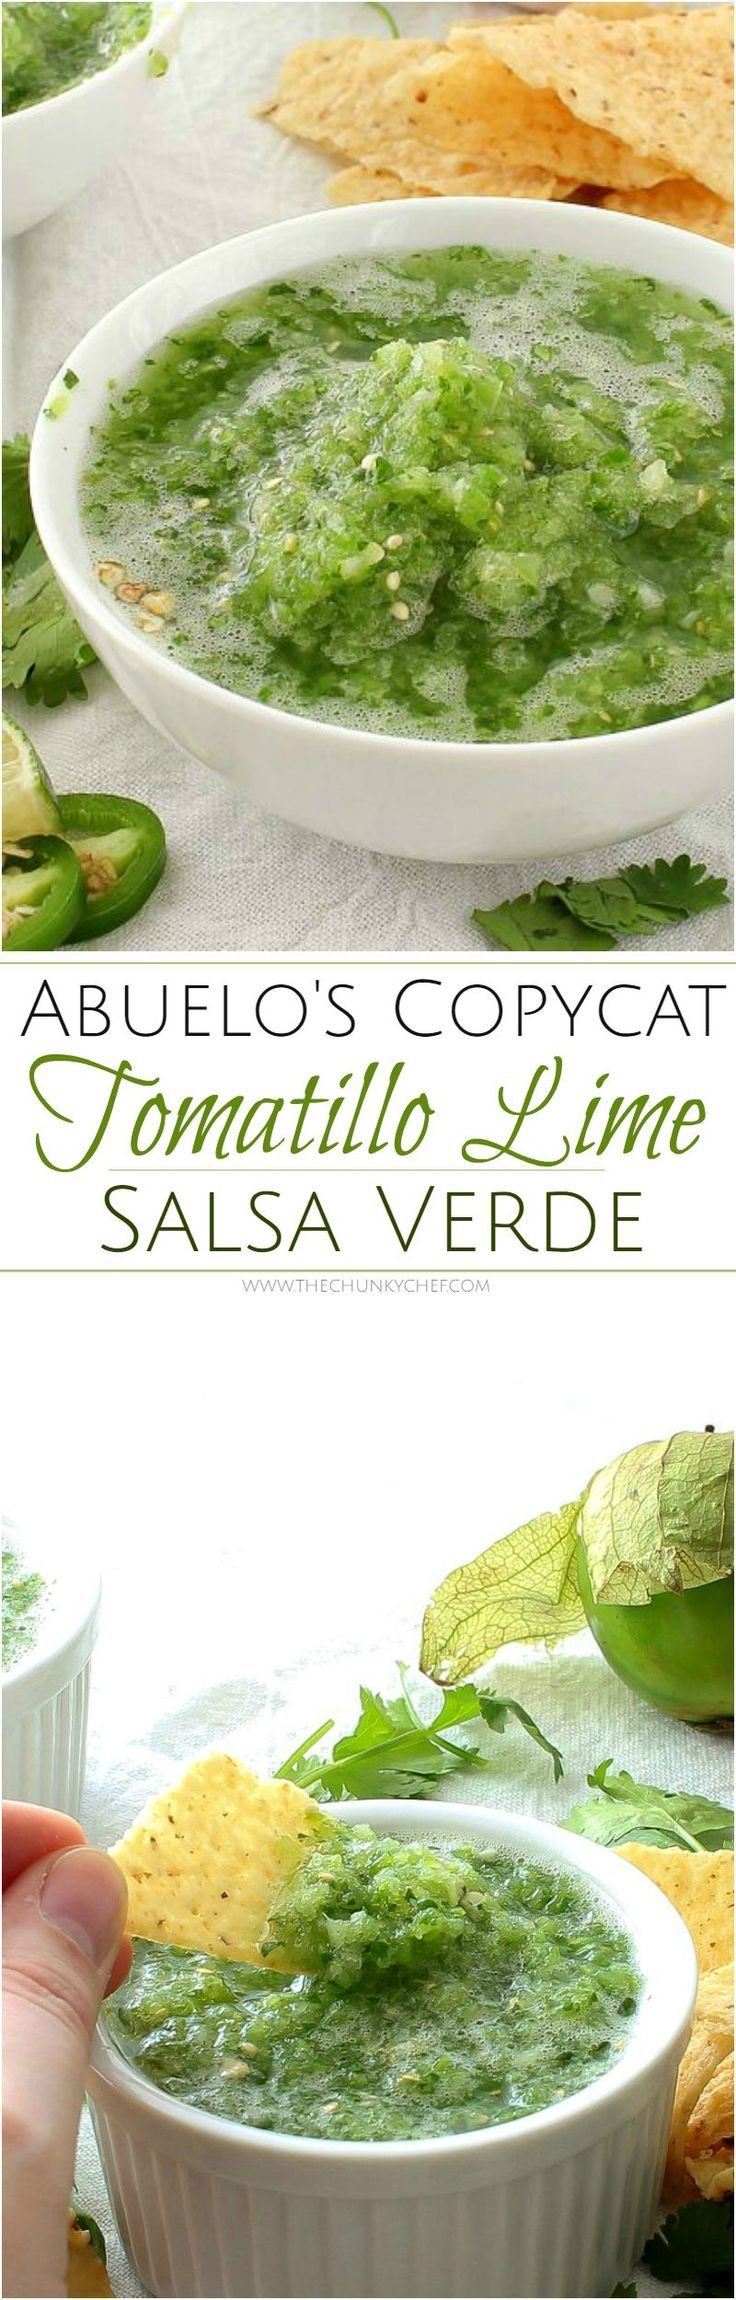 "Copycat Abuelo's Tomatillo Salsa | The Chunky Chef (http://thechunkychef.com) | This copycat of Abuelo's tomatillo salsa is so close, you'll think you're actually at the restaurant! Bright and fresh, this salsa is a ""must try""!"